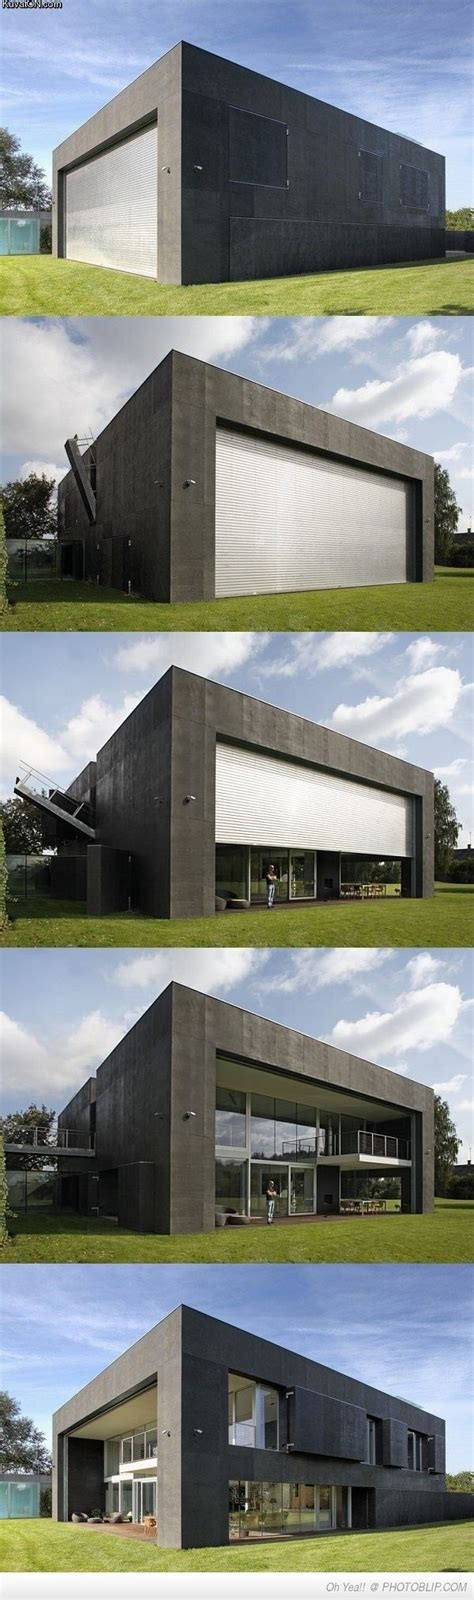 zombie apocalypse house plans 25 best ideas about zombie apocalypse house on pinterest zombie com container